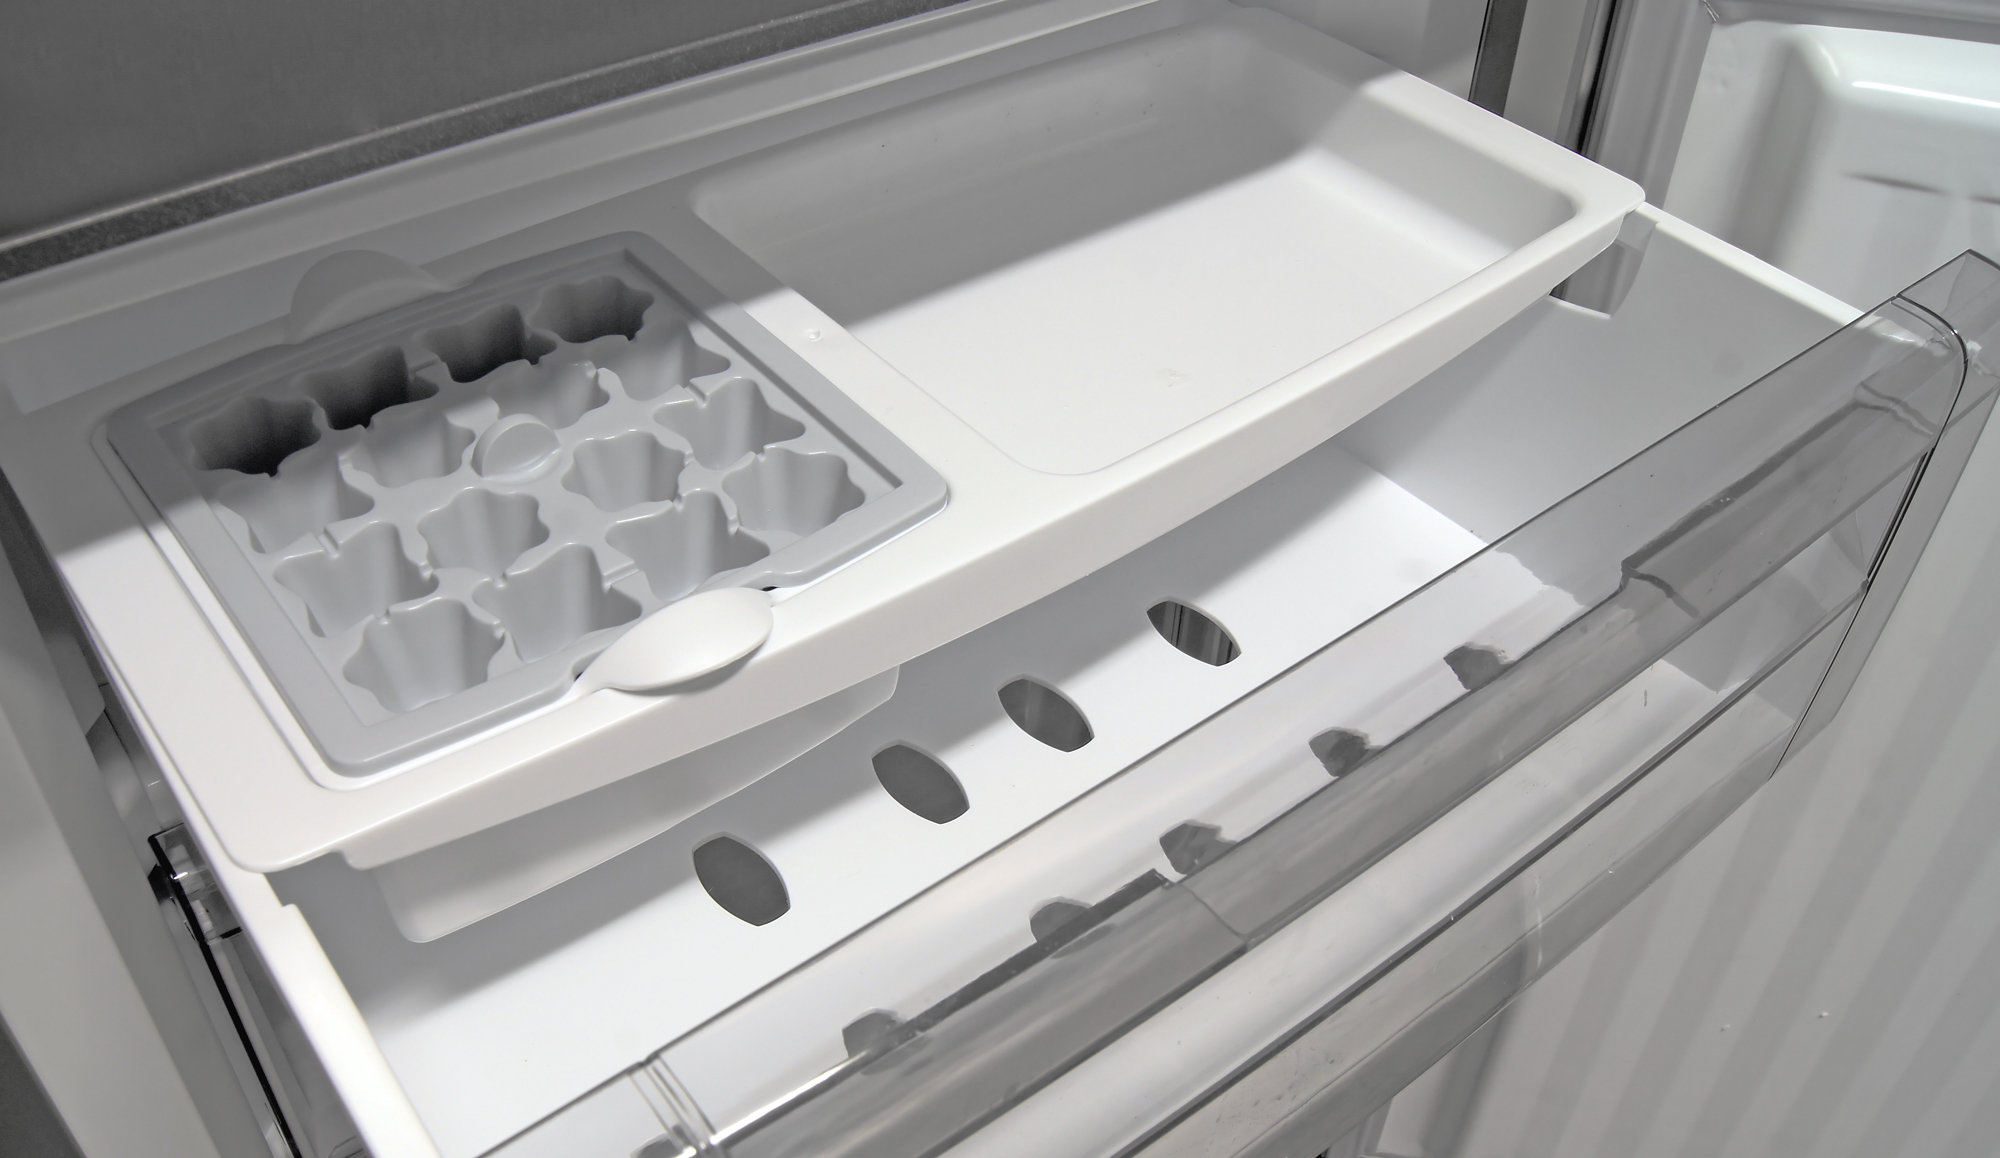 There's no icemaker in the Fagor FFJA4845X, but you do get a small plastic ice cube rack and short upper shelf, both of which are easily removable.